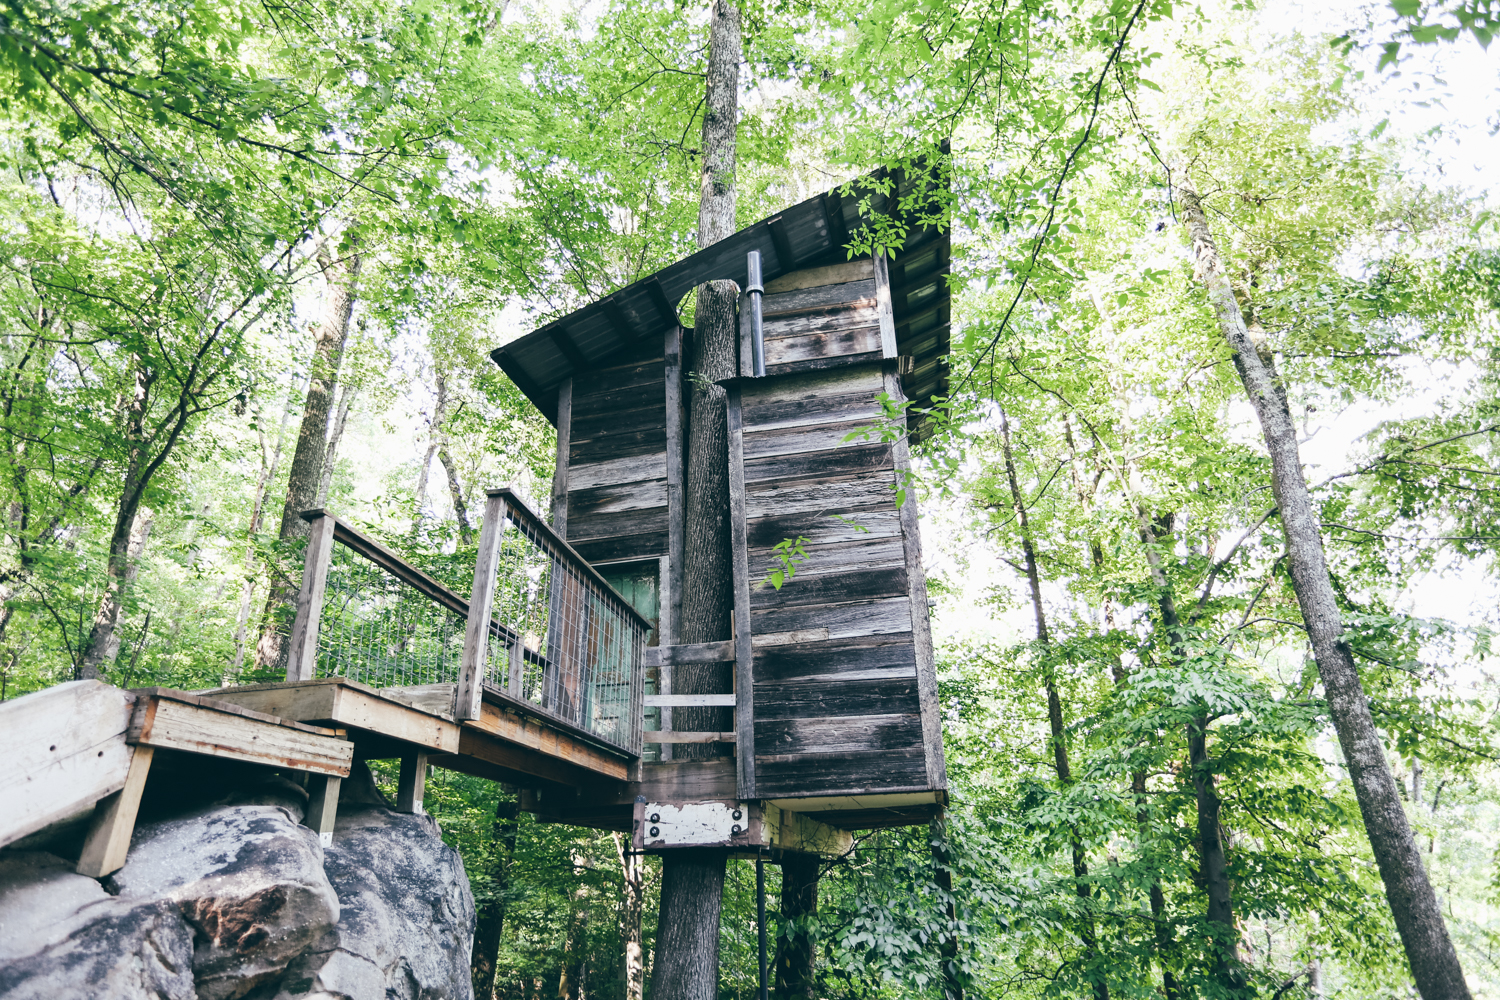 KK_chattanooga treehouse-5828.jpg